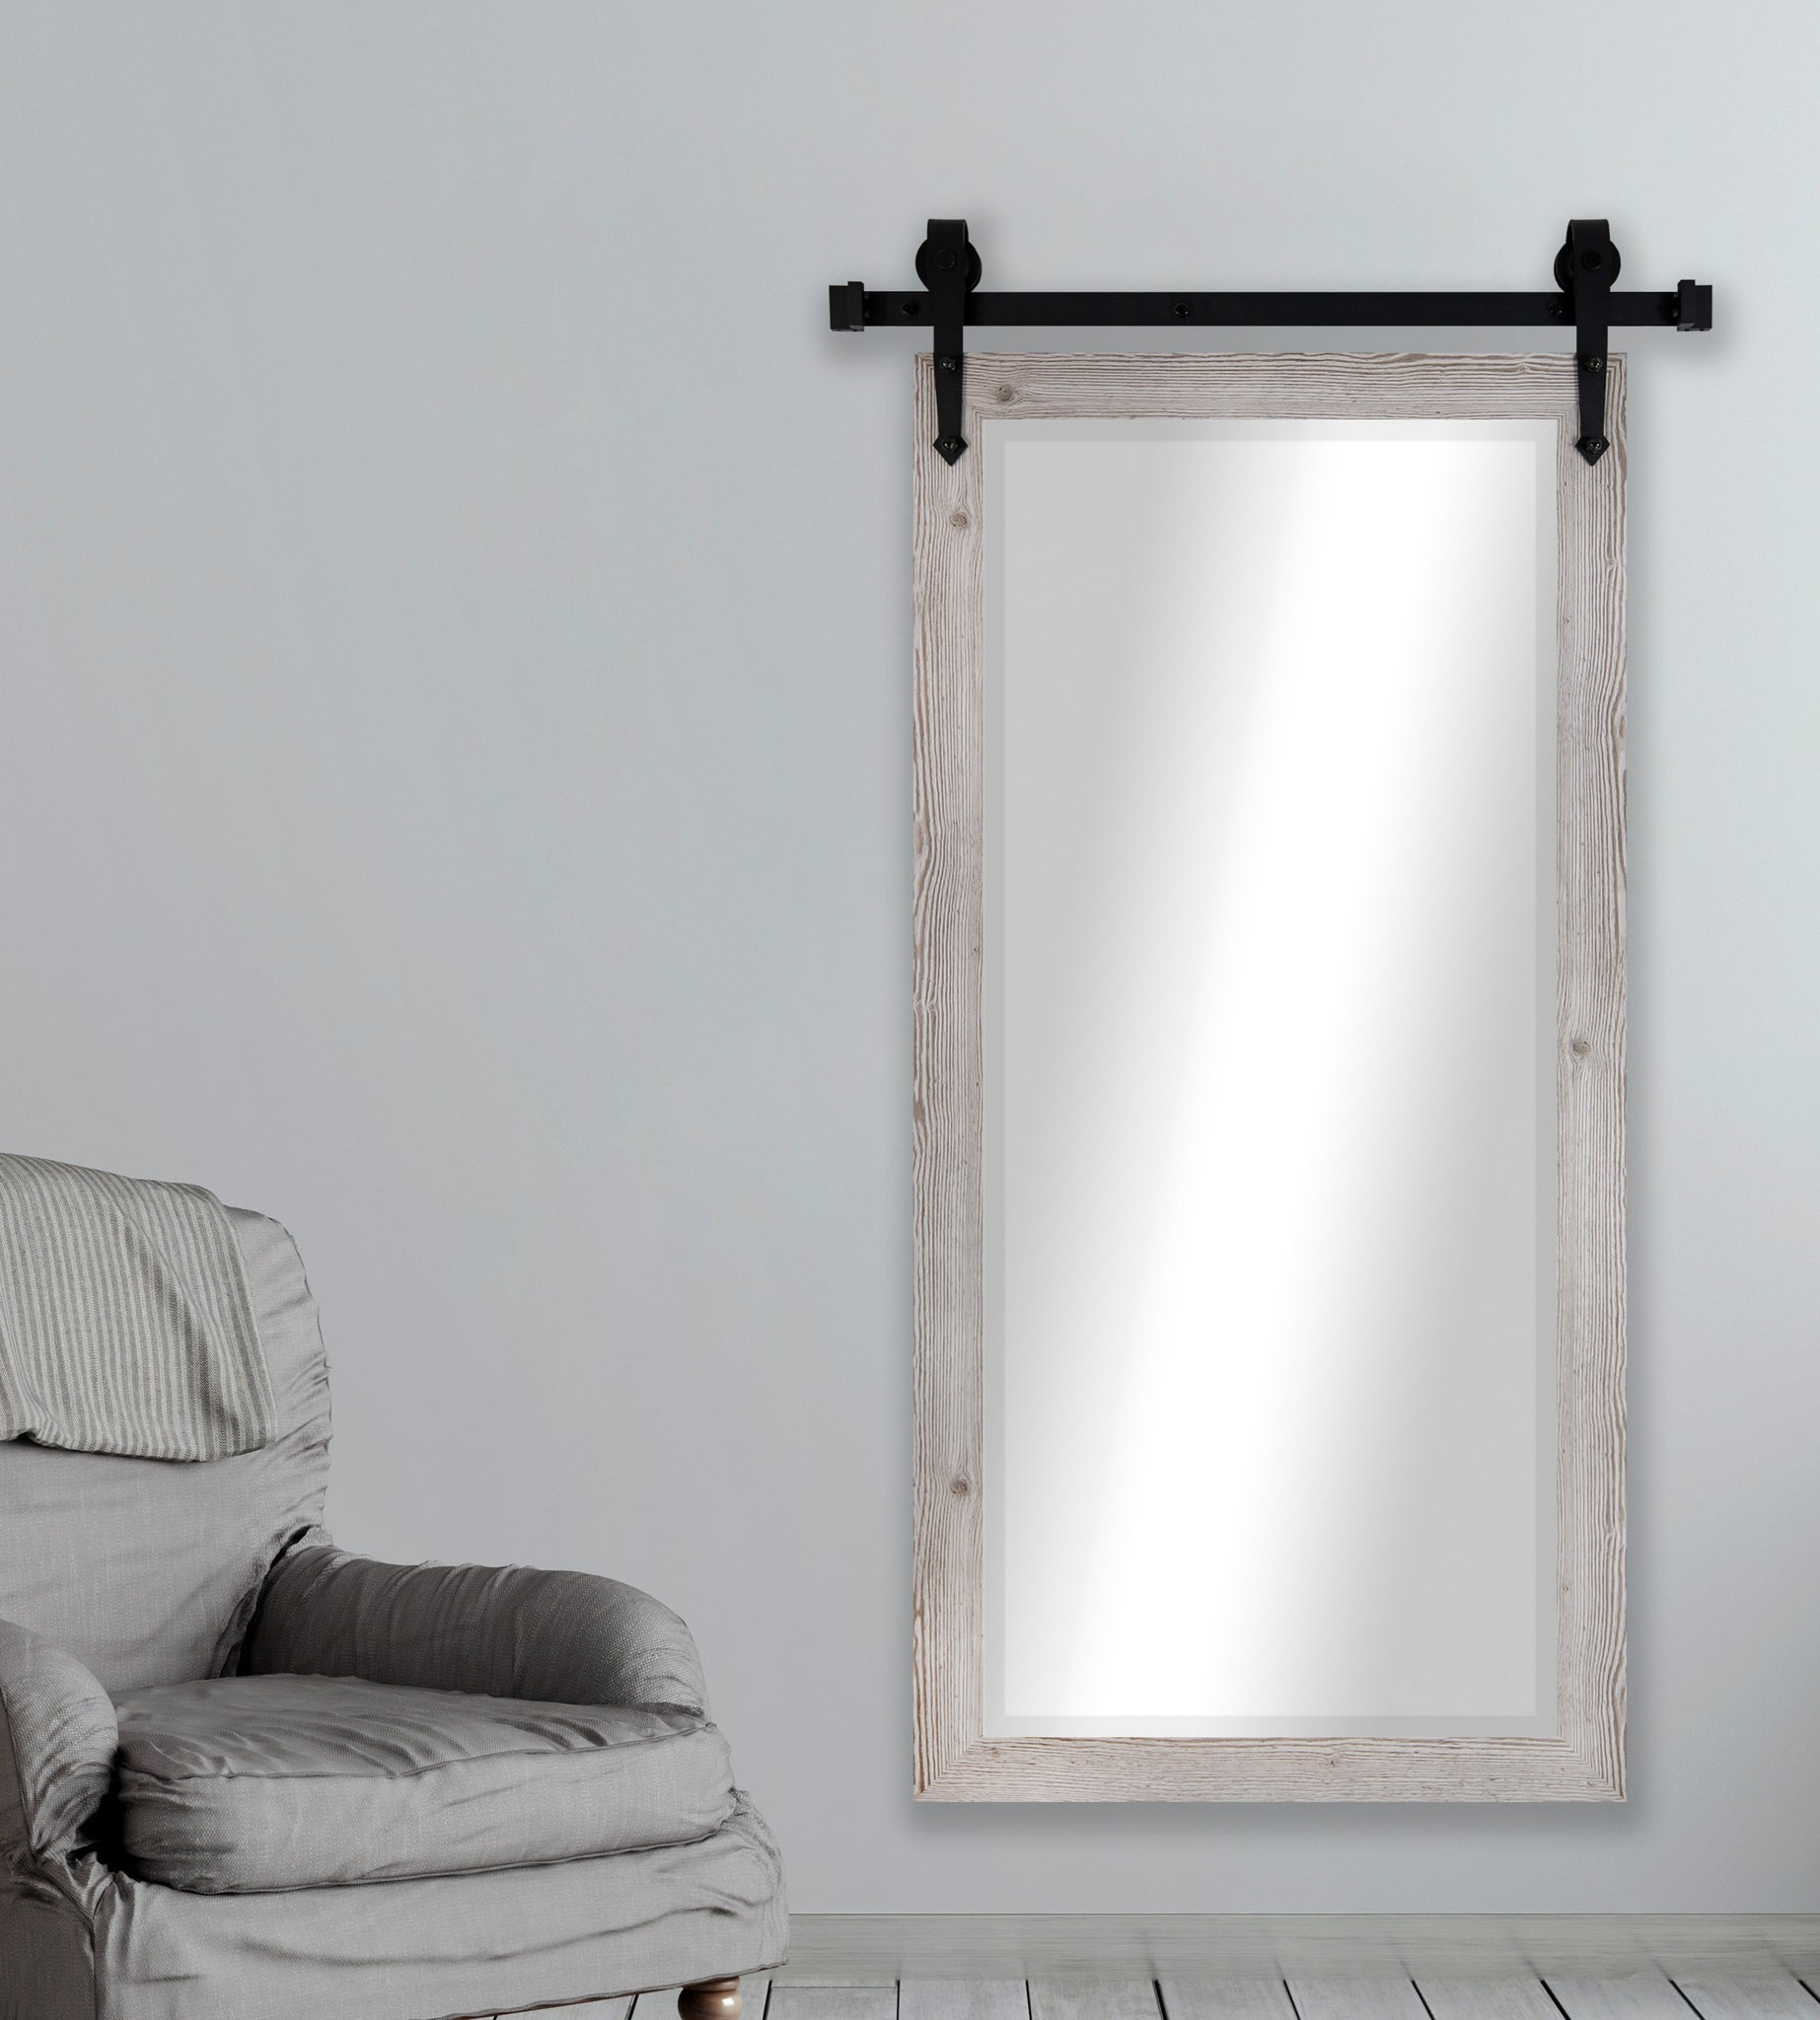 American Made Rayne White Washed Antique Beveled Wall Mirror With Barn Rayne Mirrors Inc